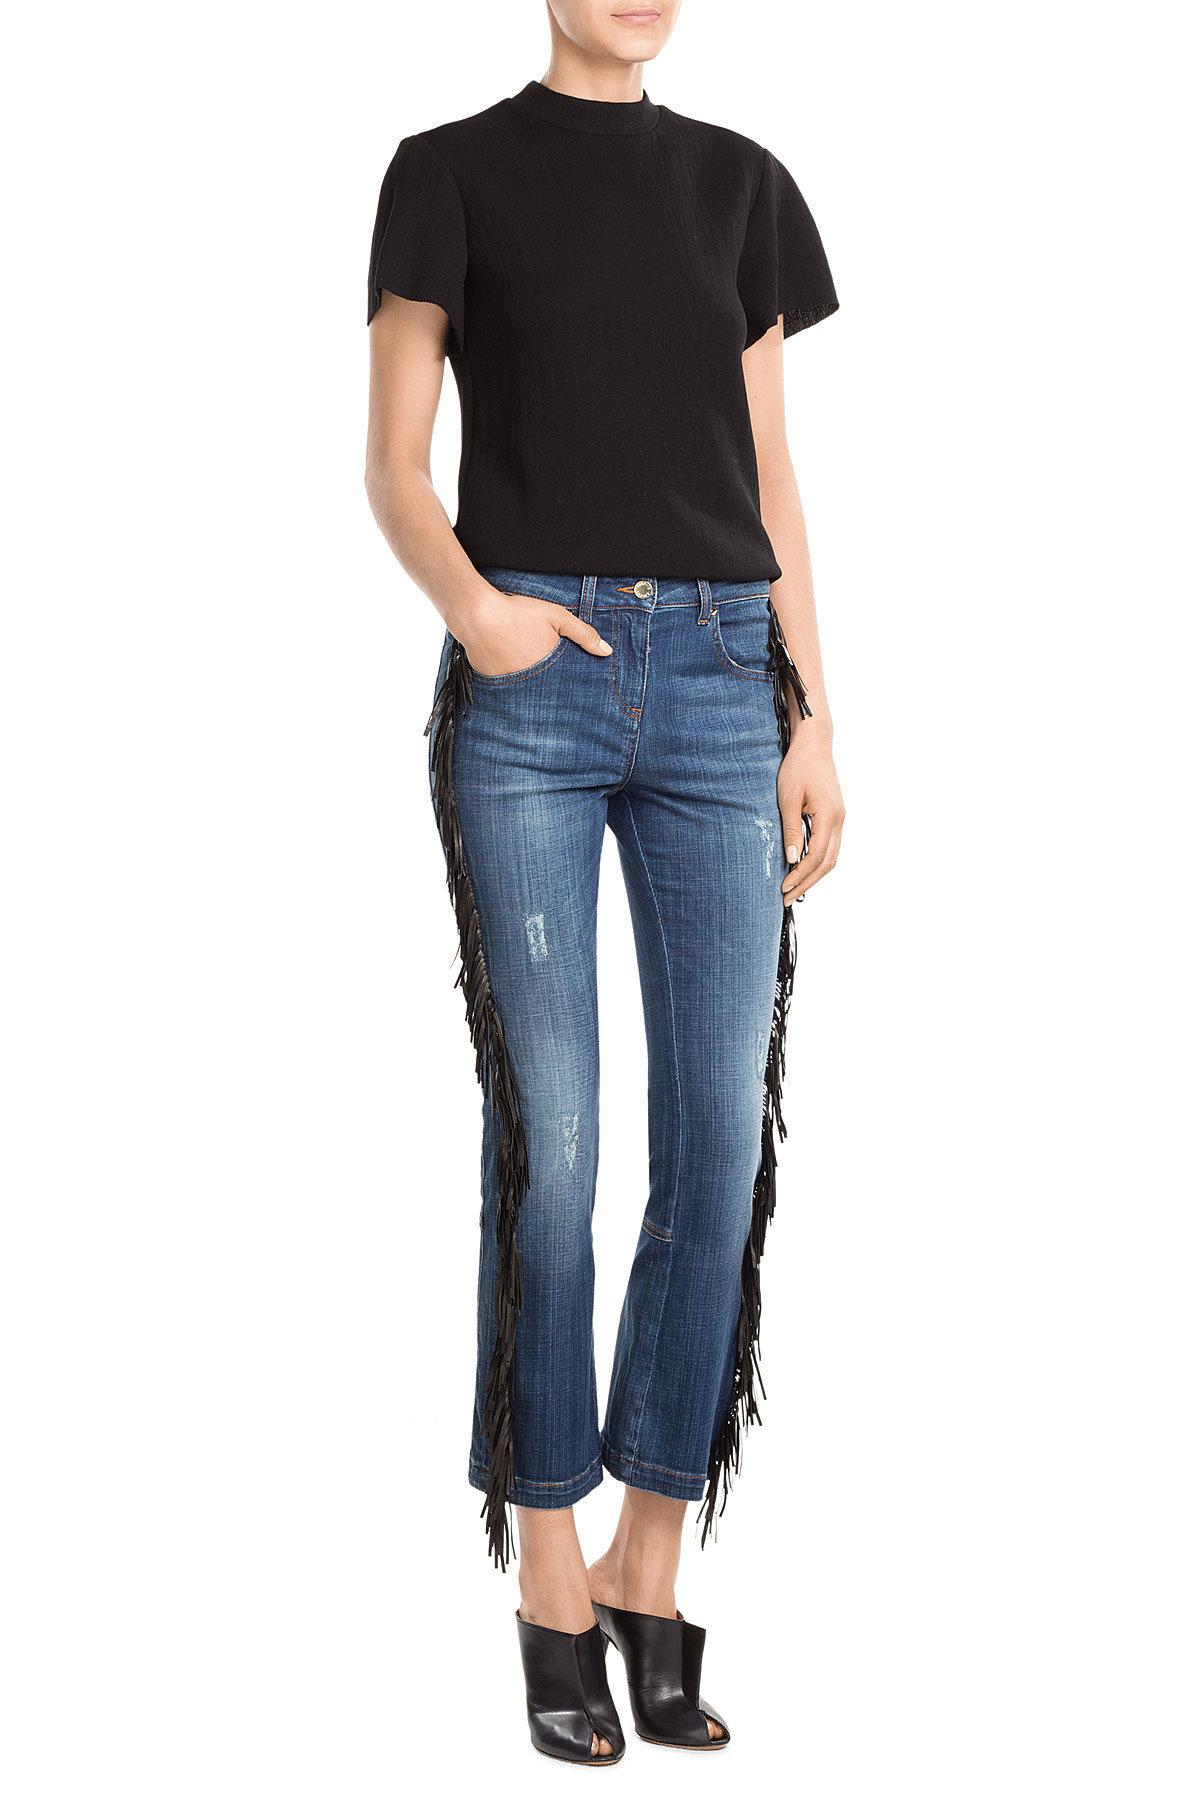 Lyst - Roberto Cavalli Straight Jeans With Leather Fringe in Blue 5ab02763f